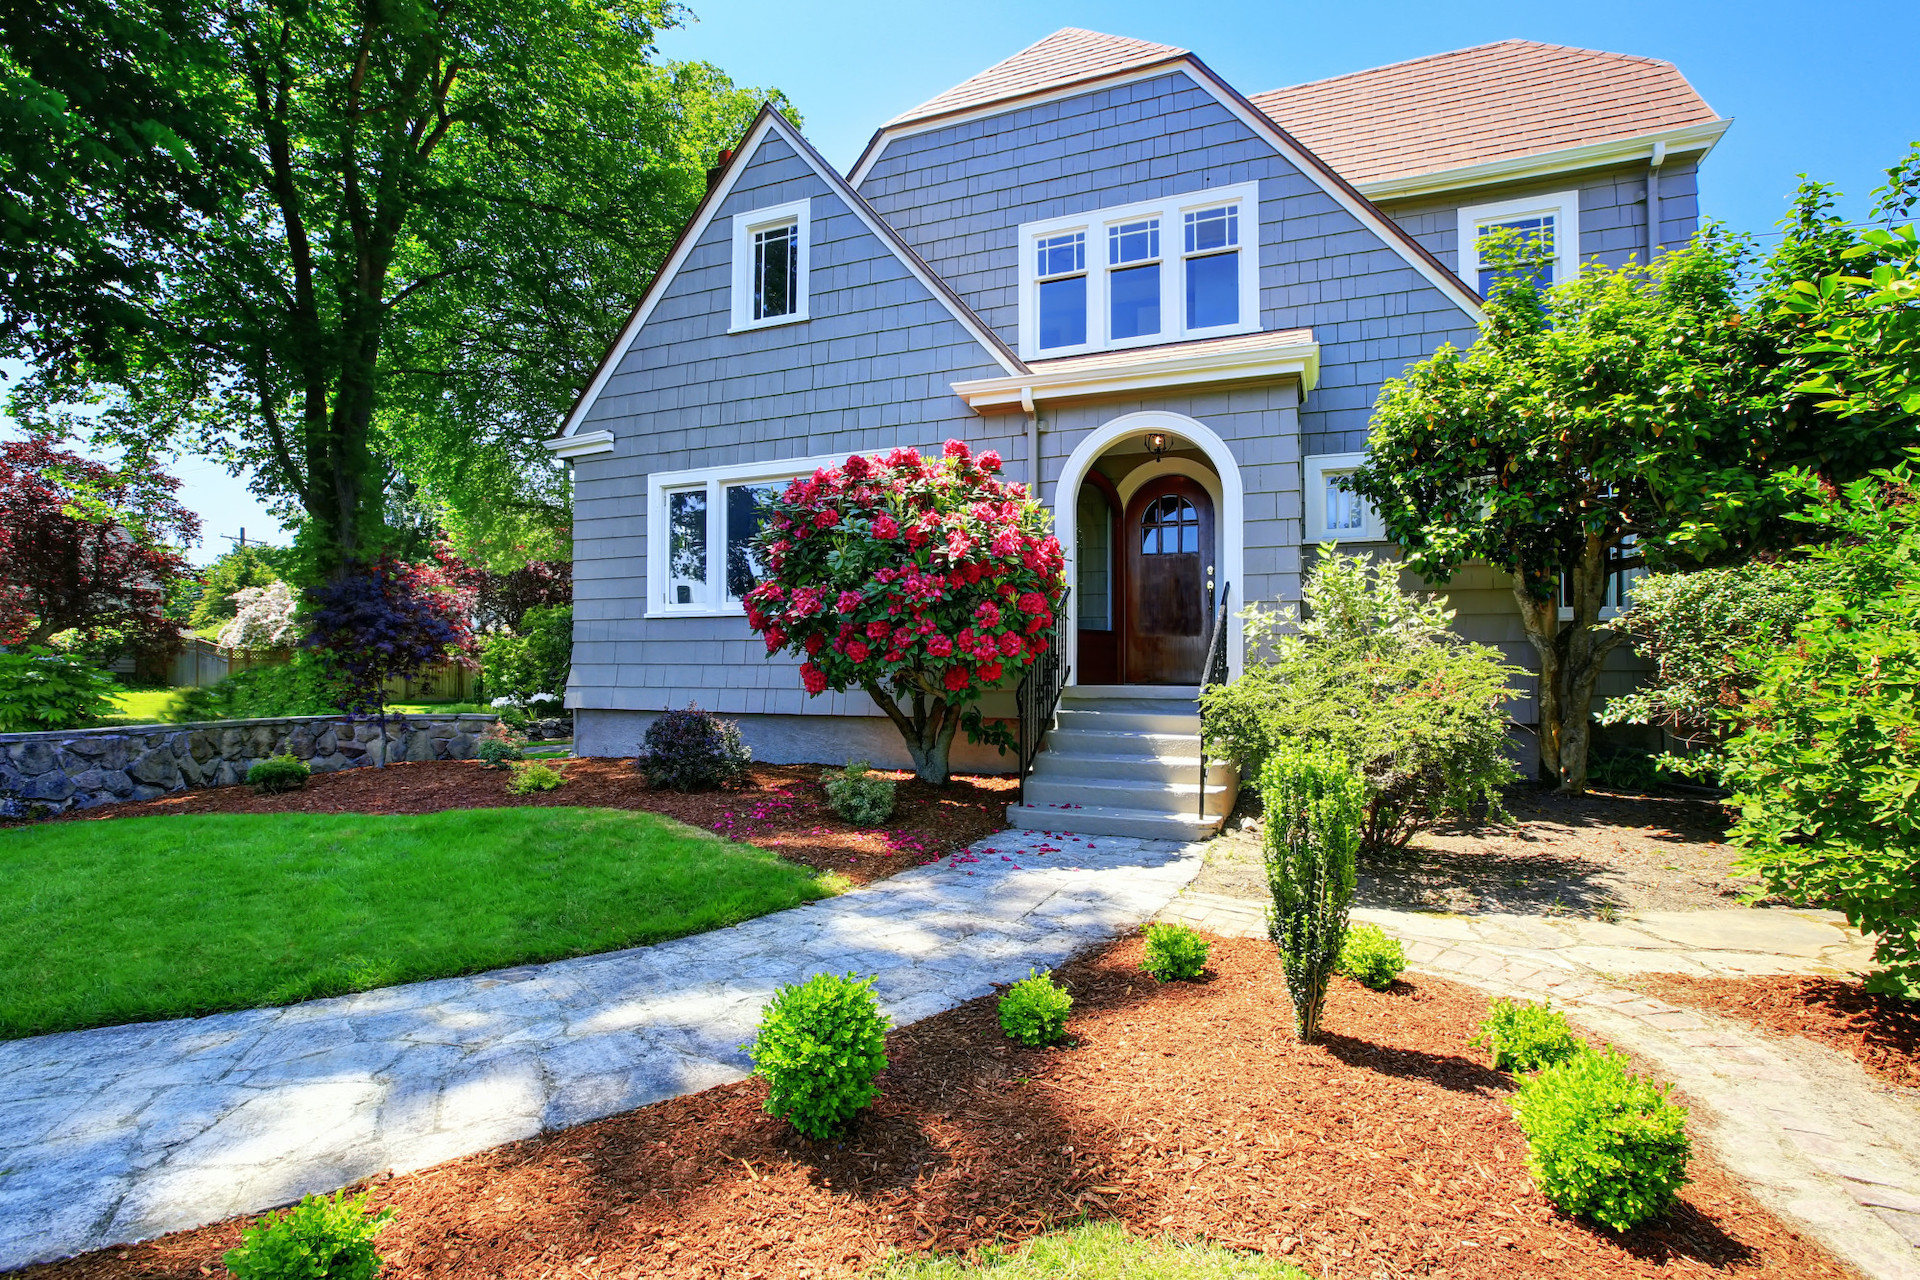 How to Boost Your Listing's Winter Curb Appeal